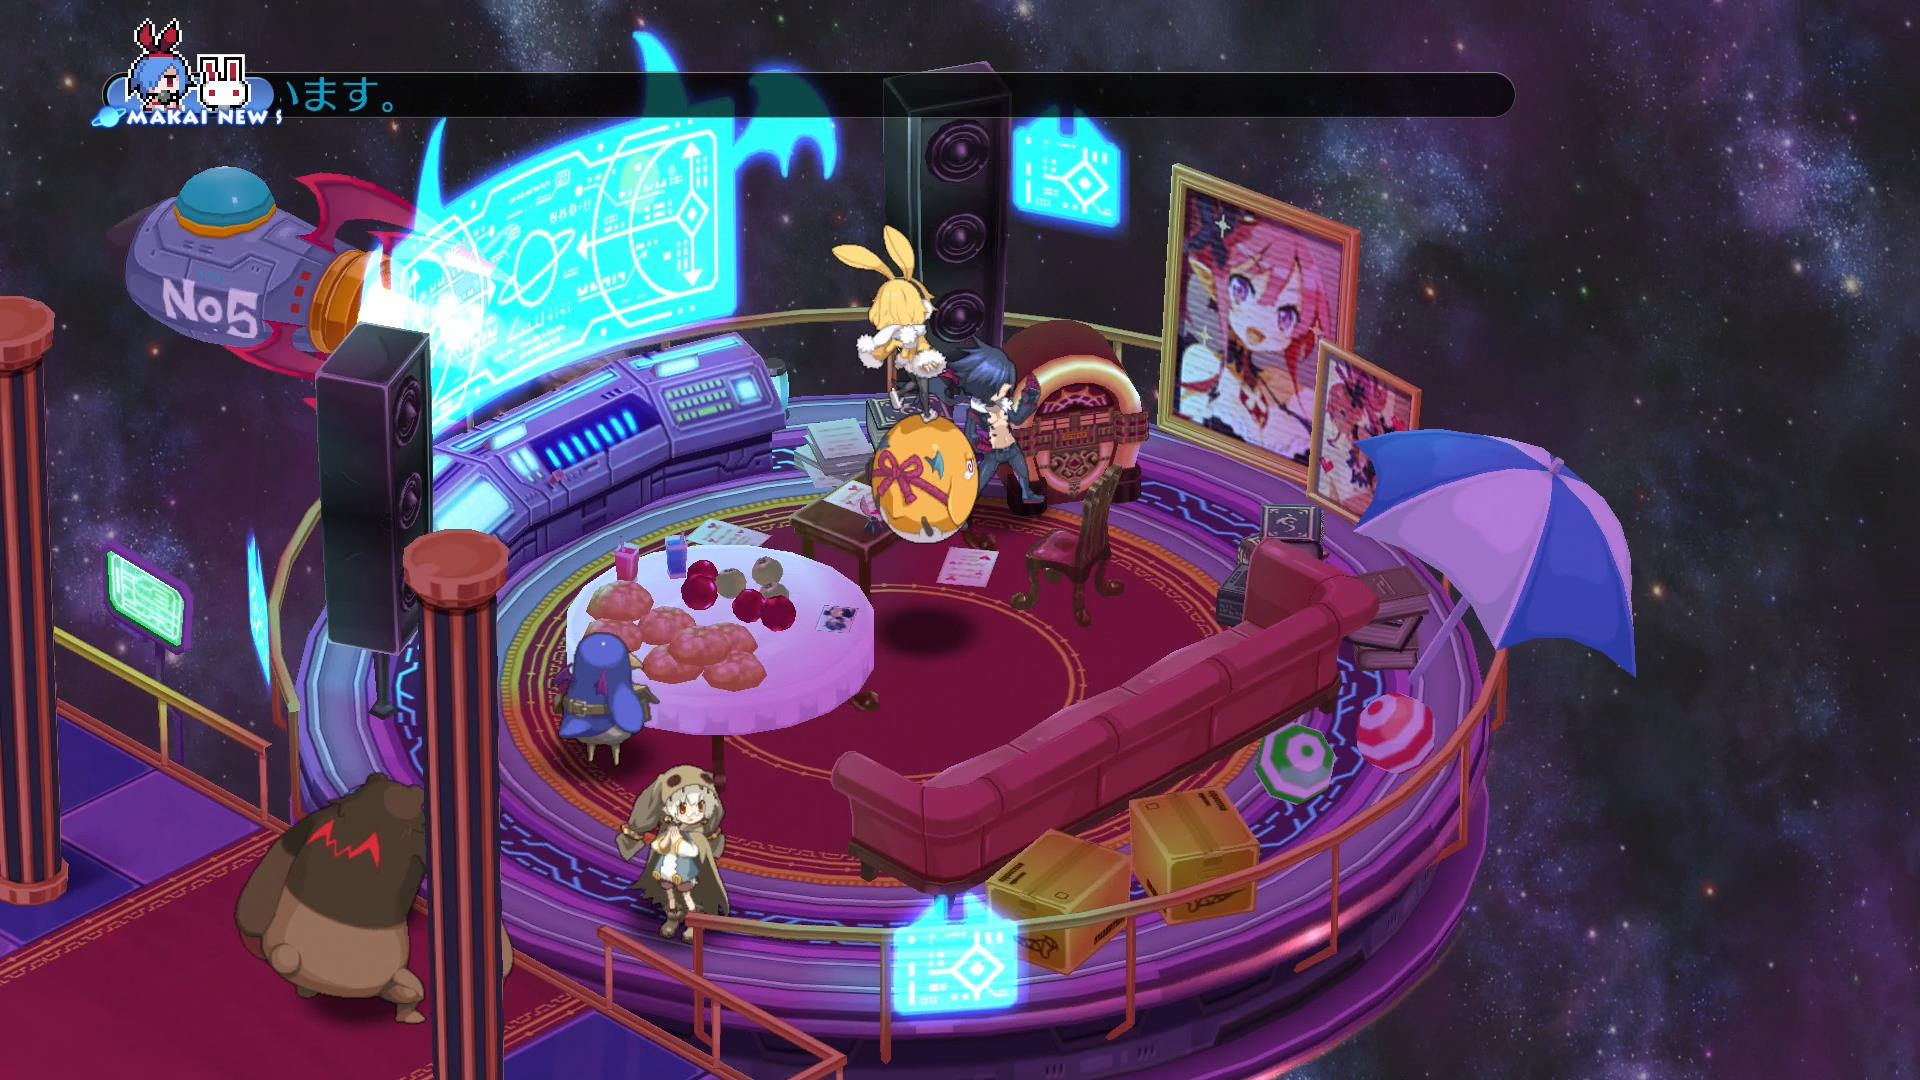 disgaea-5-tgs-demo-gameplay-2014-09-26-08-51-59-mp4_snapshot_08-46_2014-09-26_13-45-14